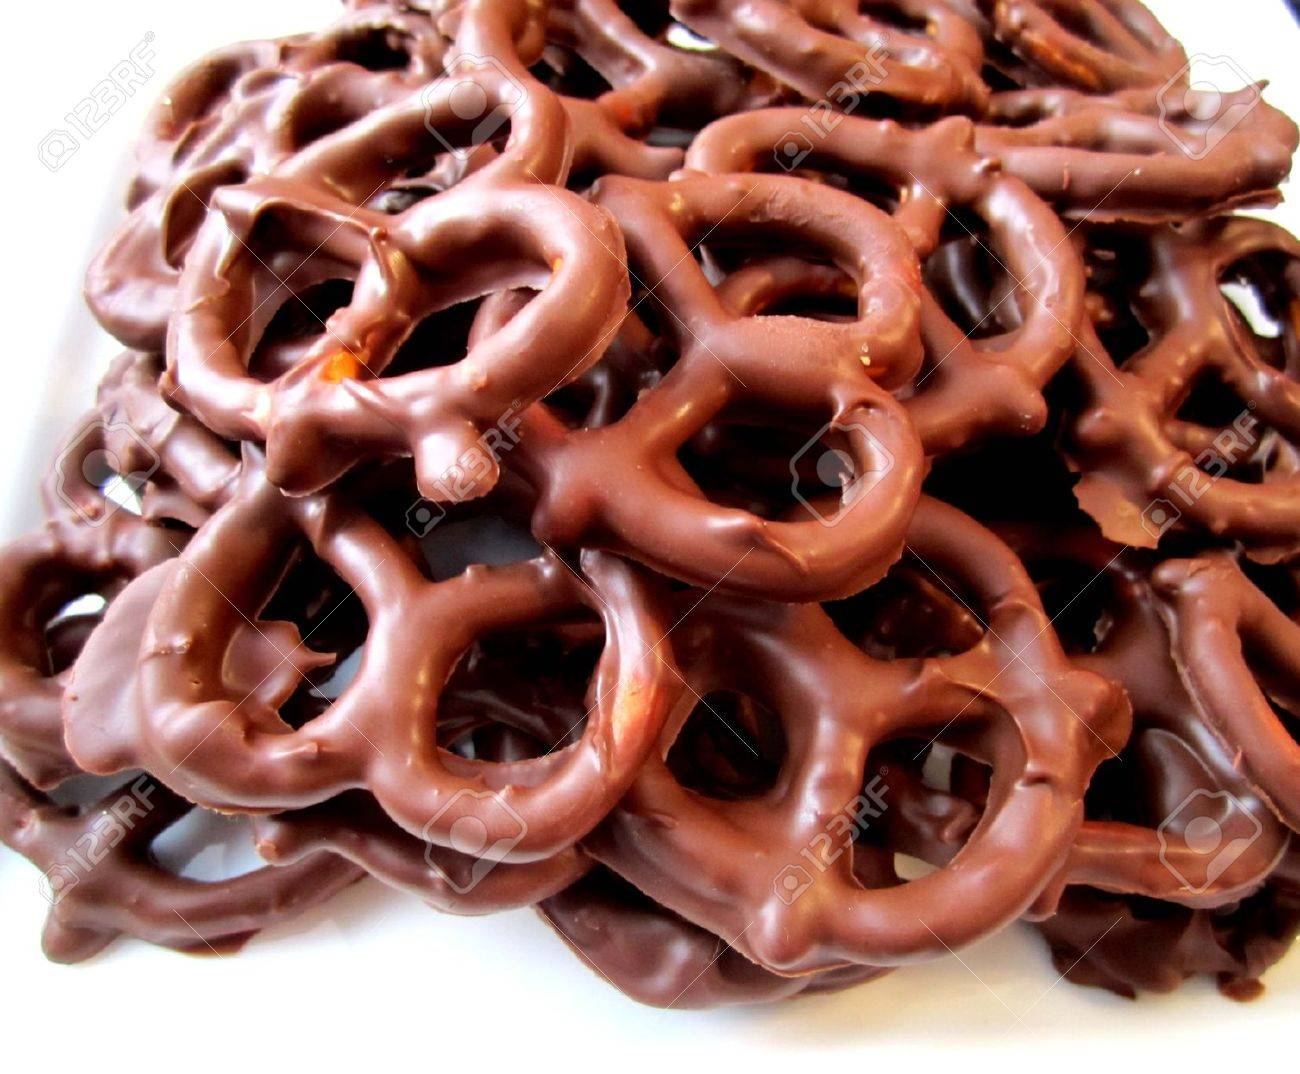 Chocolate Covered Pretzels Stock Photo, Picture And Royalty Free ...